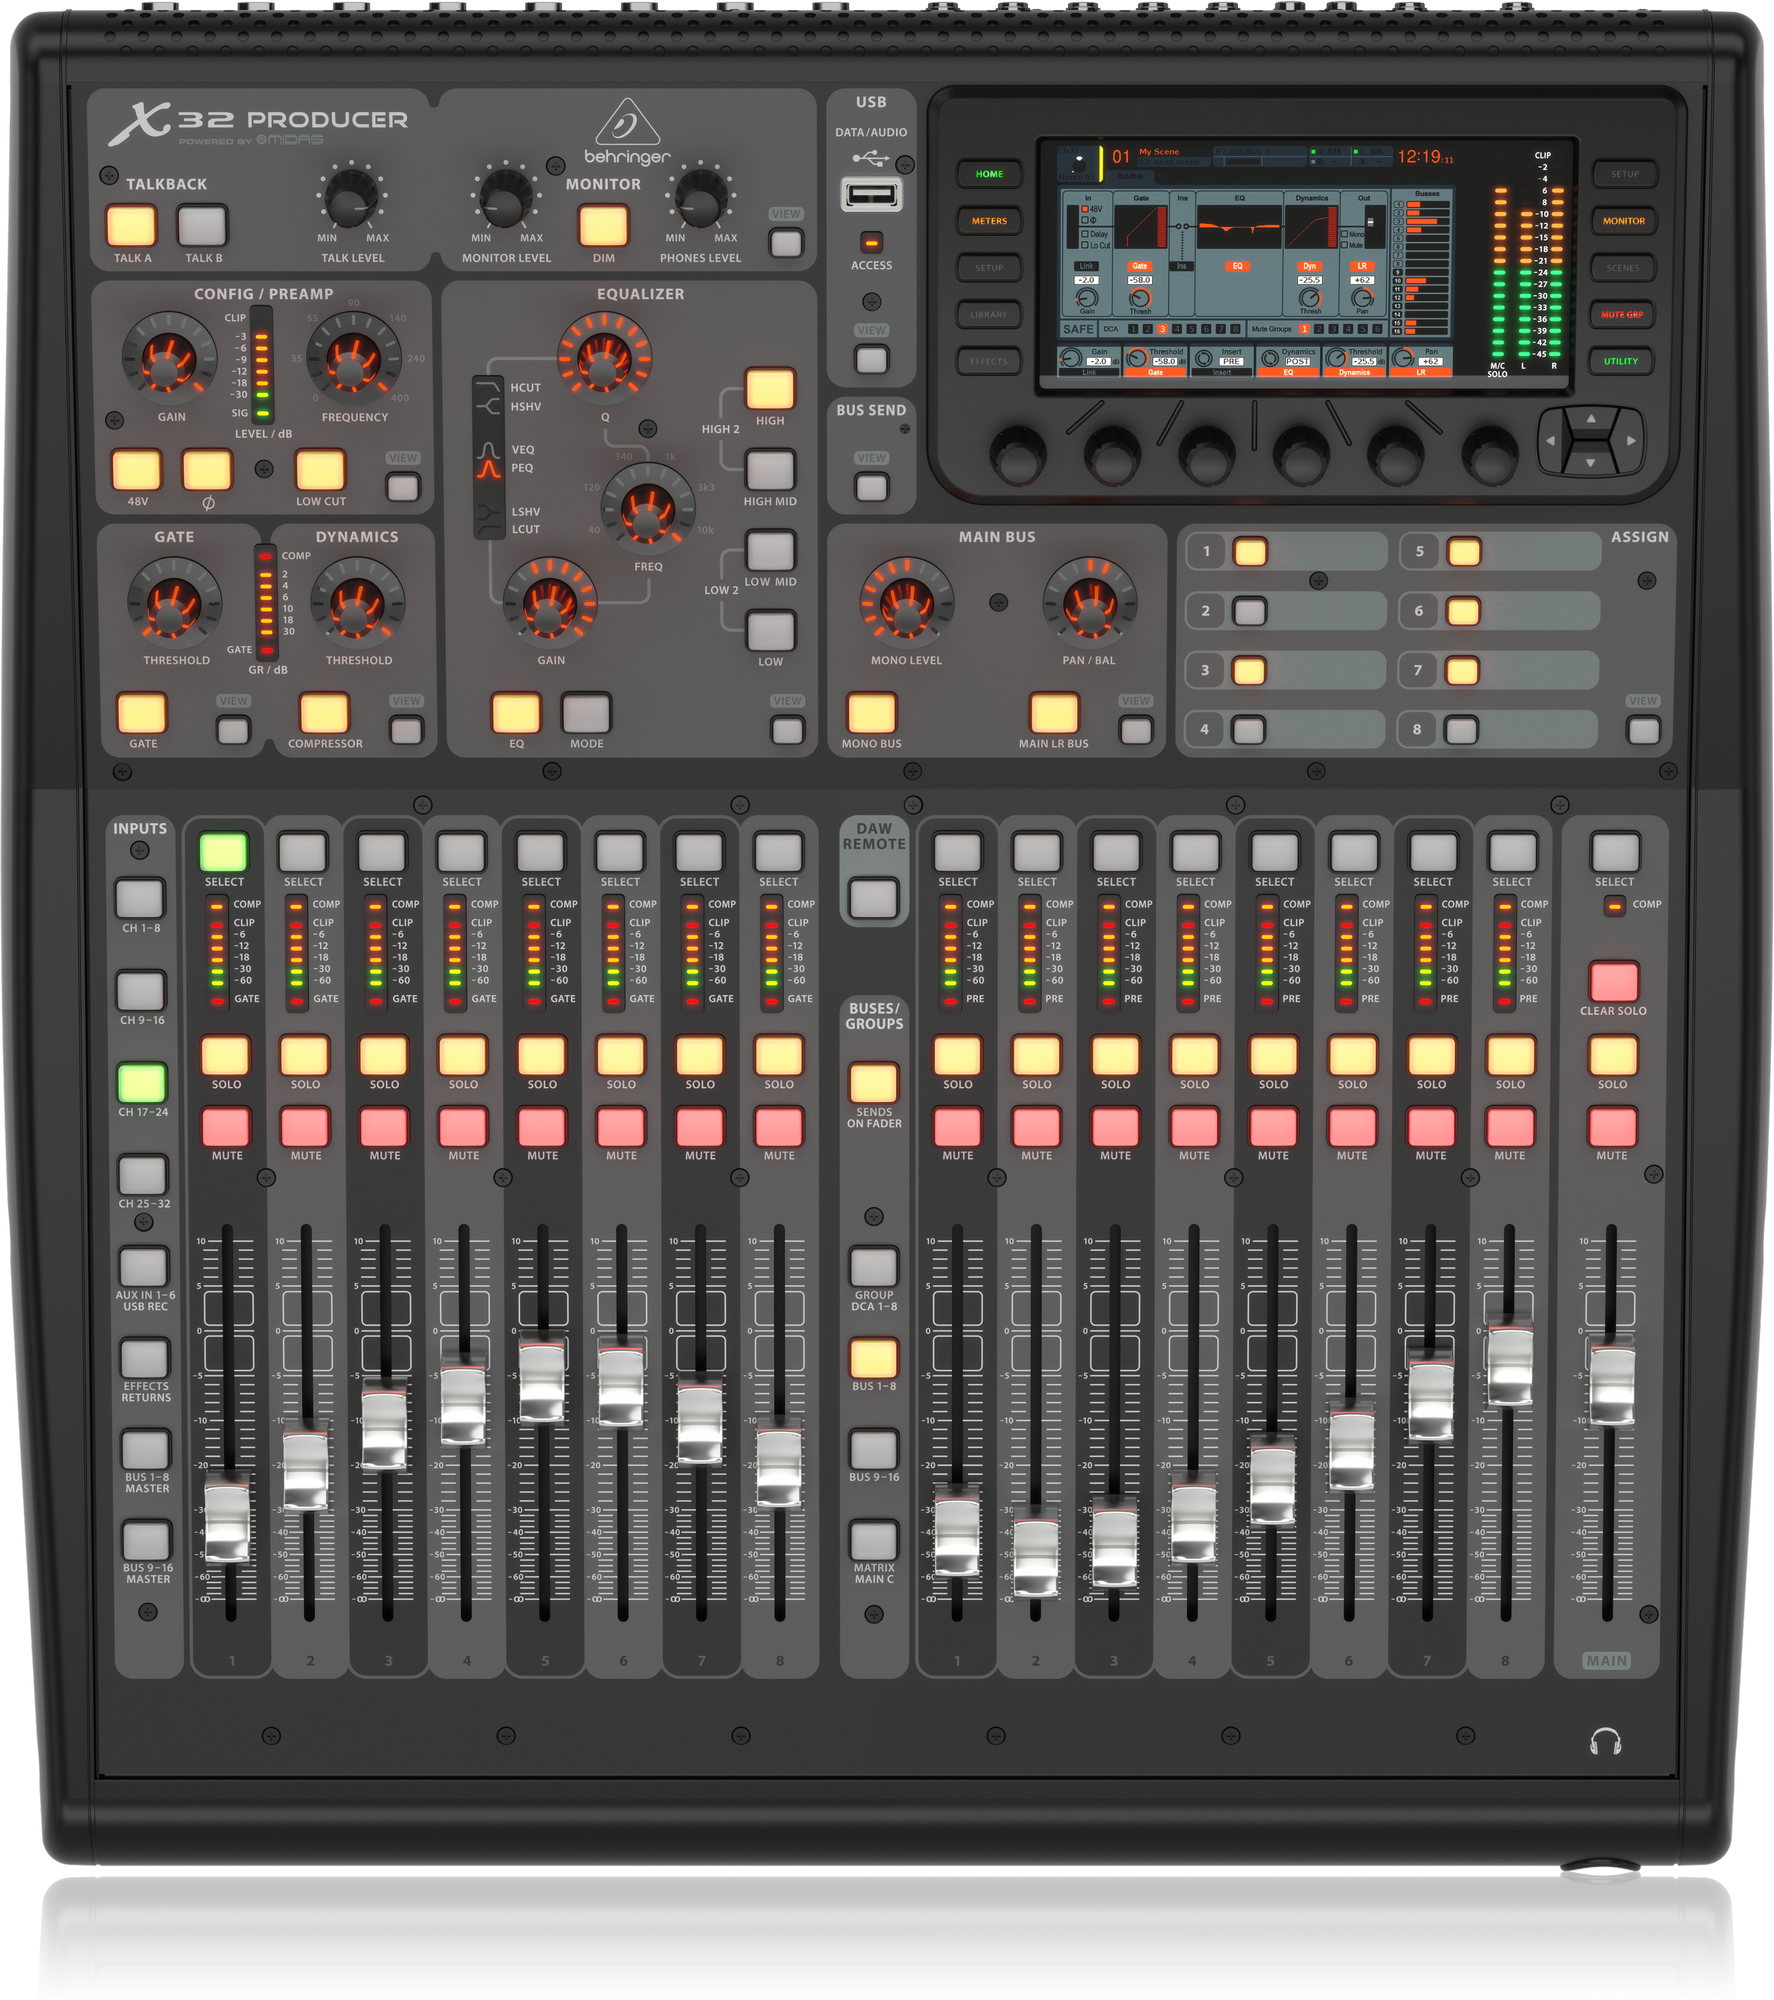 Behringer X32 PRODUCER - Digital Mixing Console